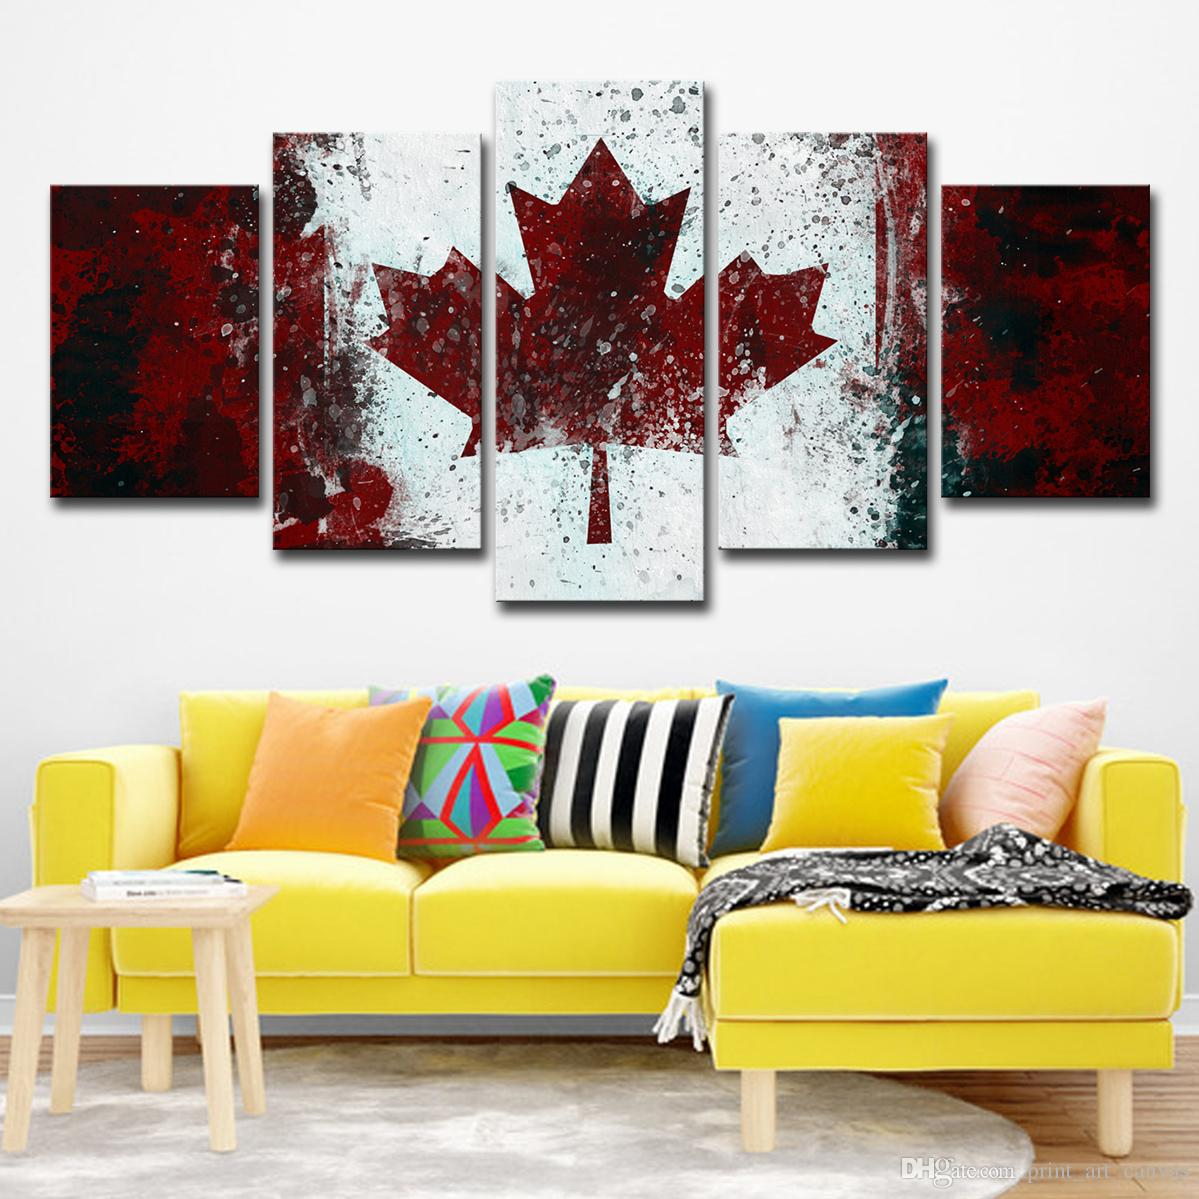 Modern hd printed wall art painting canvas print room decor print poster 5 panels canada national flag picture canvas home decor canada 2019 from